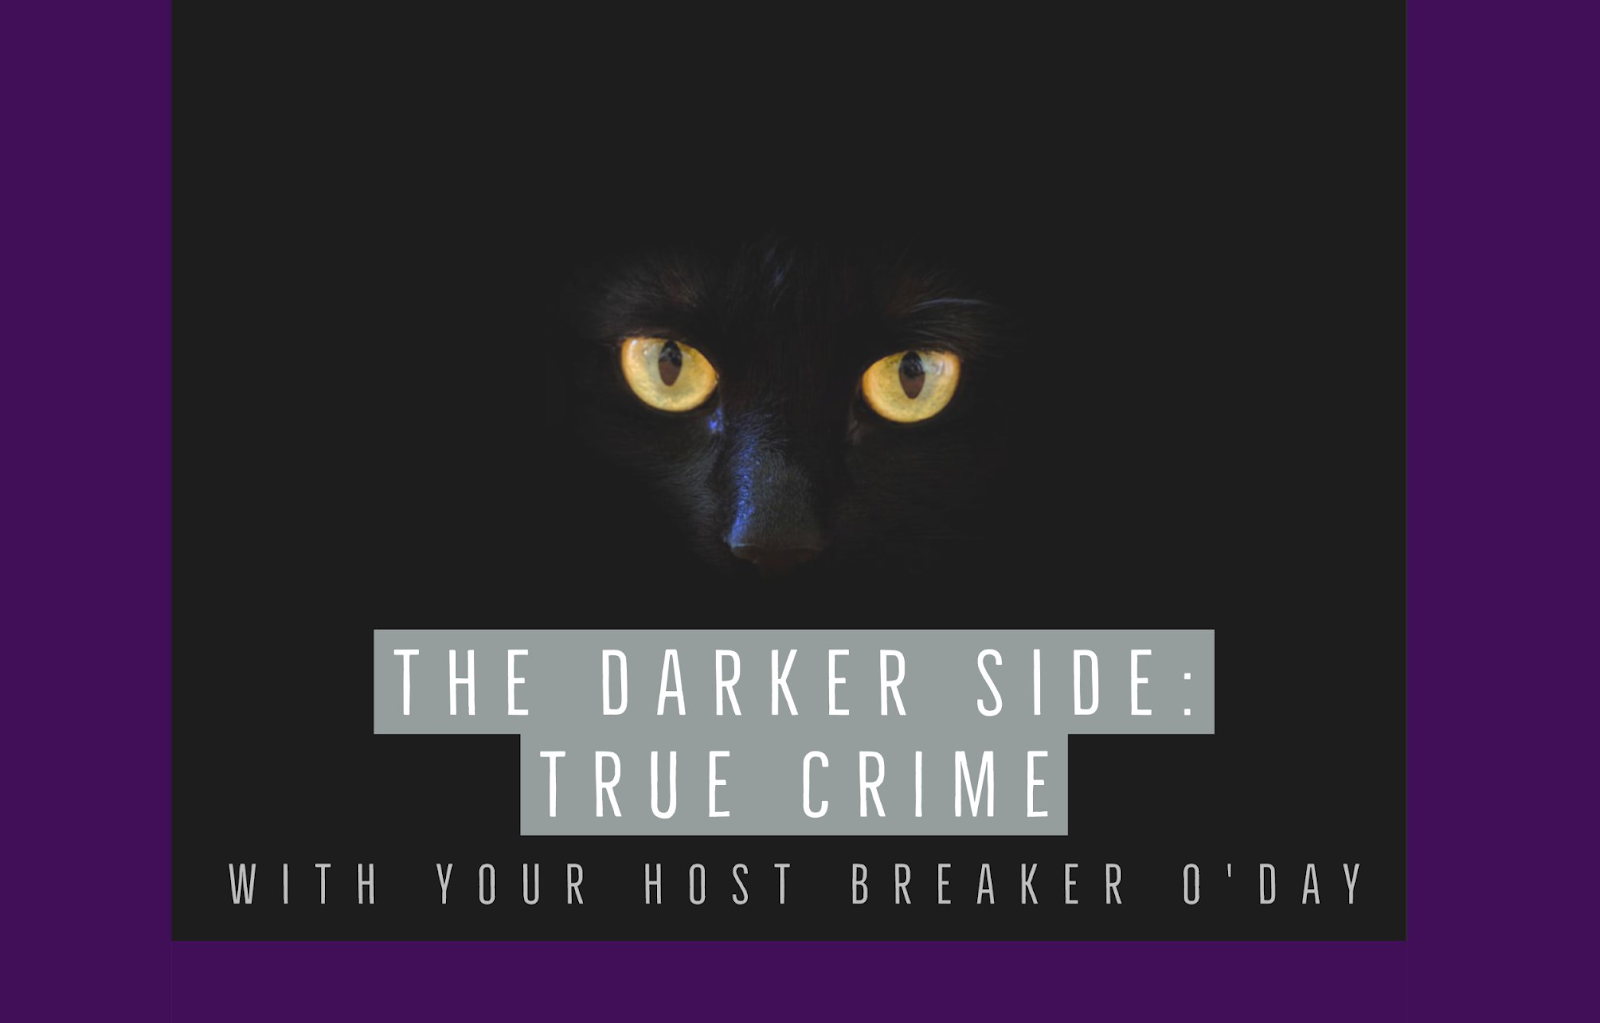 The Darker Side True Crime